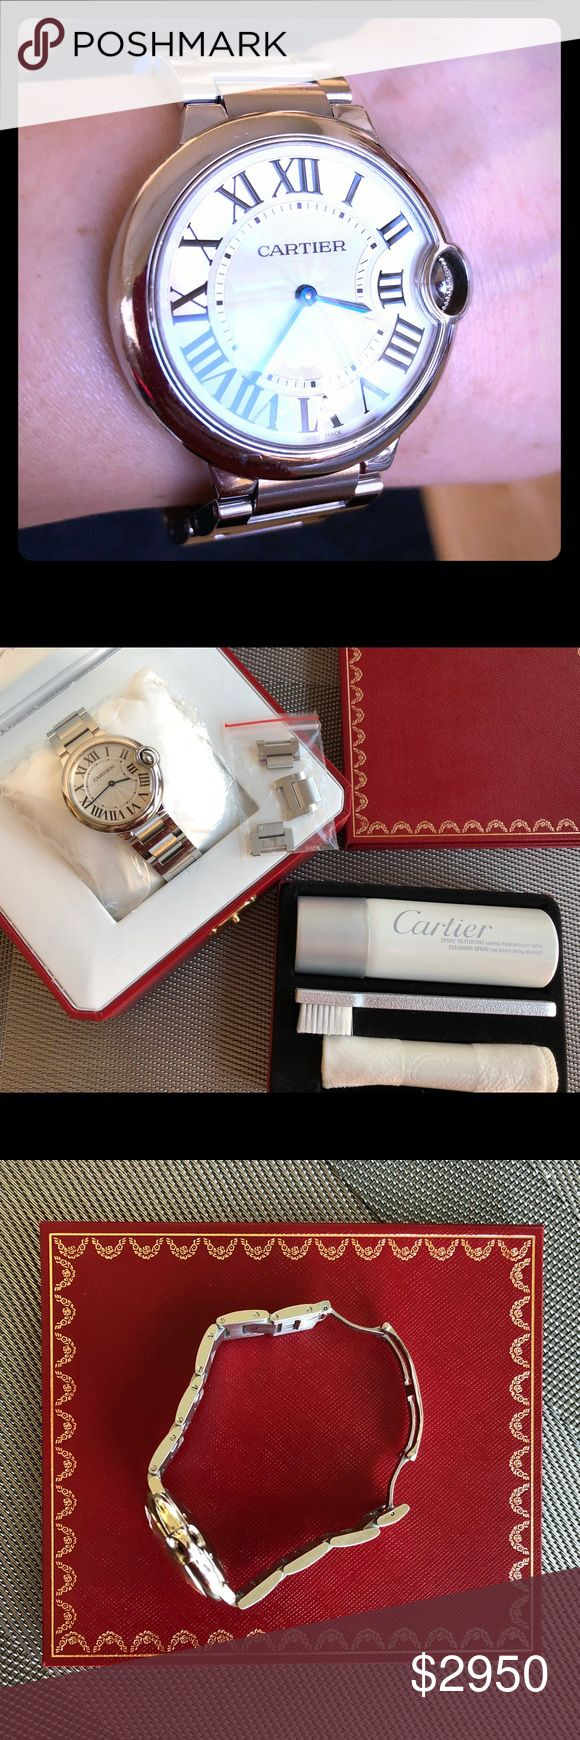 Cartier Ballon Bleu Stainless Steel Watch Medium 35% off Retail. Ballon Bleu de Cartier watch, 33 mm (medium size), mechanical movement, auto winding. Steel case, silvered guilloché opaline dial, Roman numerals, blued-steel hands, sapphire crystal, steel bracelet. Diameter: 33 mm, thickness: 9.96 mm. Water-resistant approx. 30 meters/100 ft  Purchased 2010 at Cartier store in Singapore. Authentic with orig packaging (box little damaged). Well worn but very well taken care of! This model does…